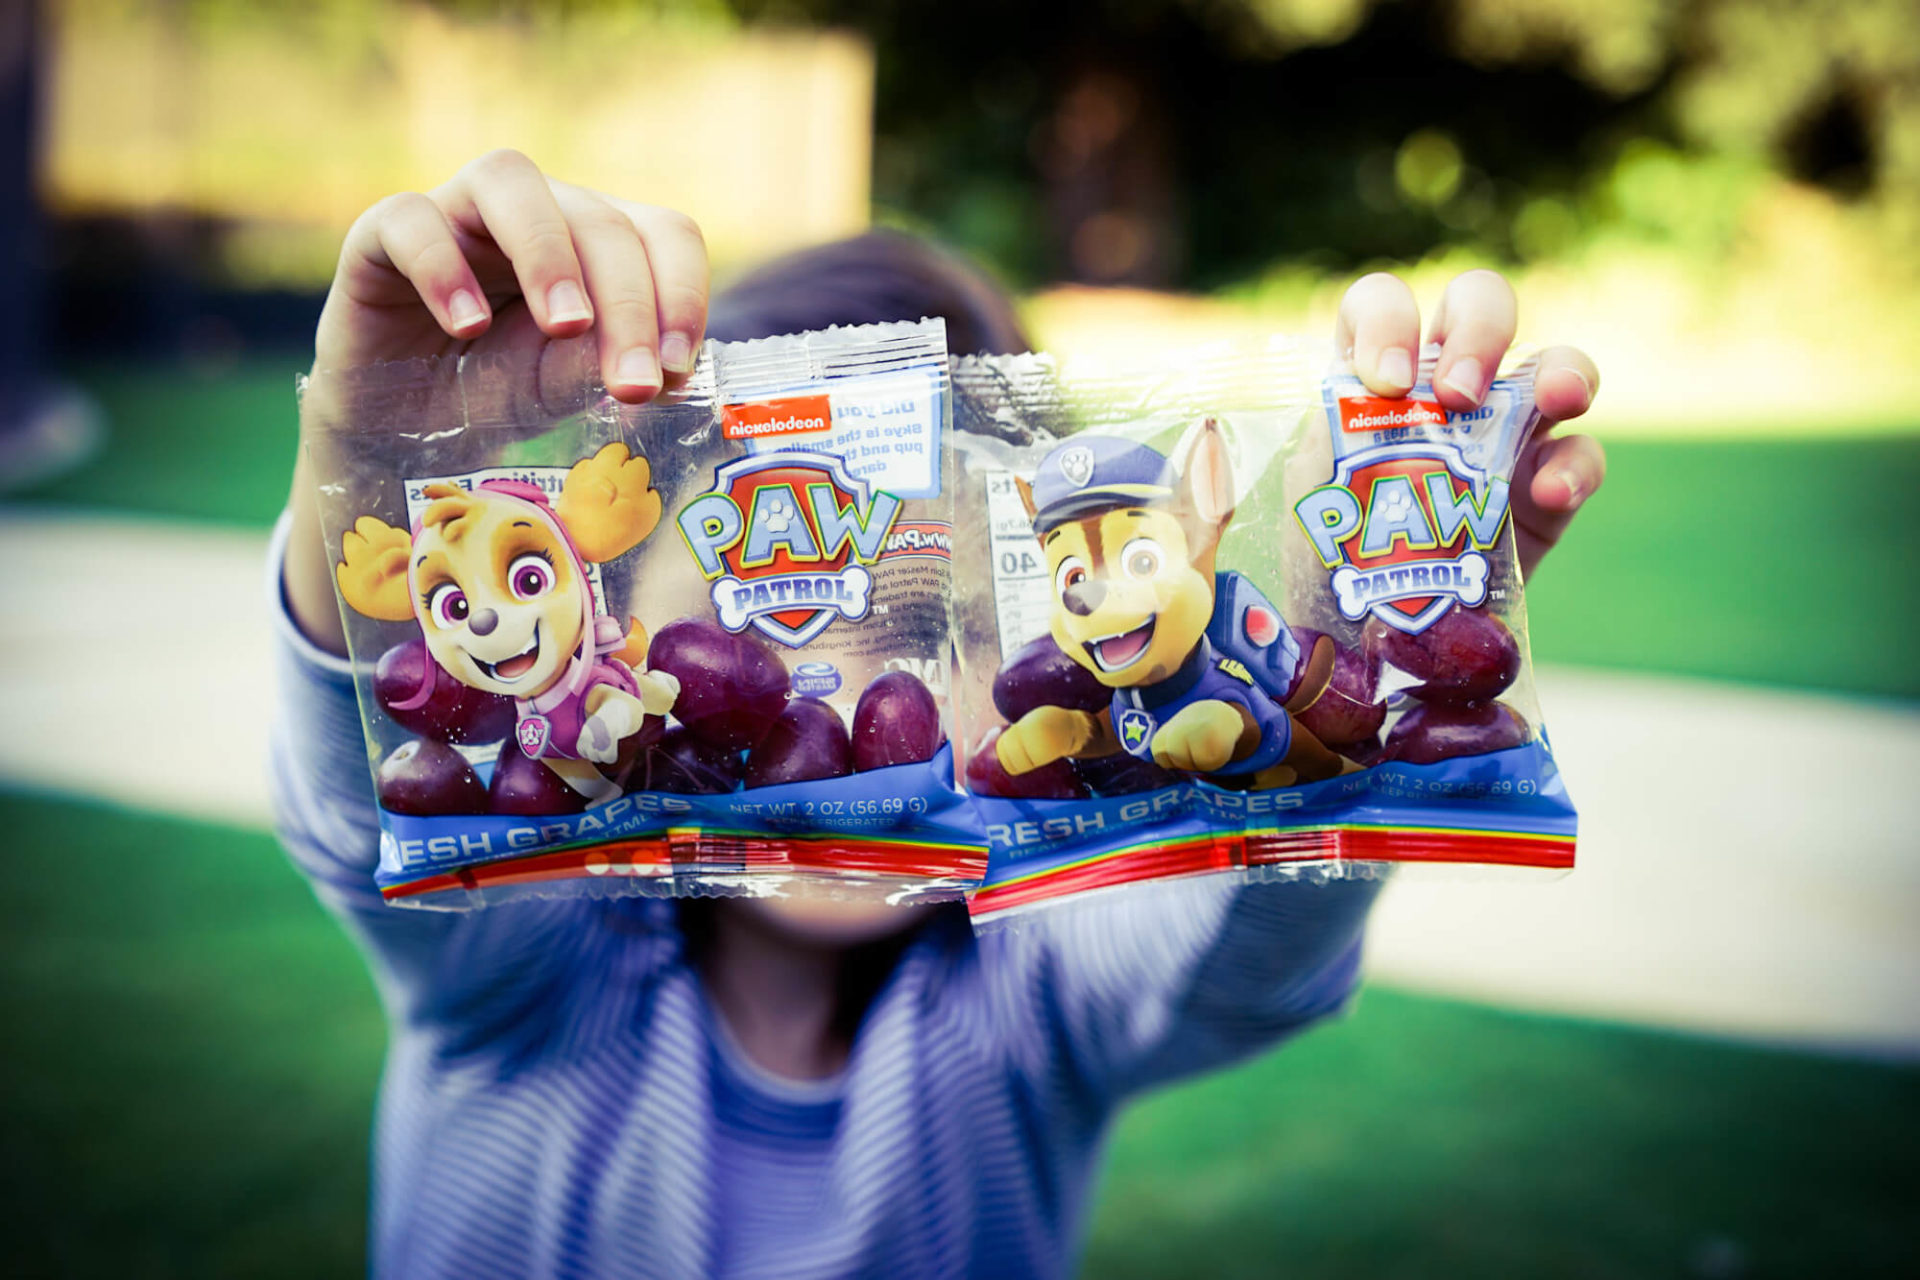 SpongeBob and PAW Patrol Grapes + Grape Flatbread Pizza Recipe